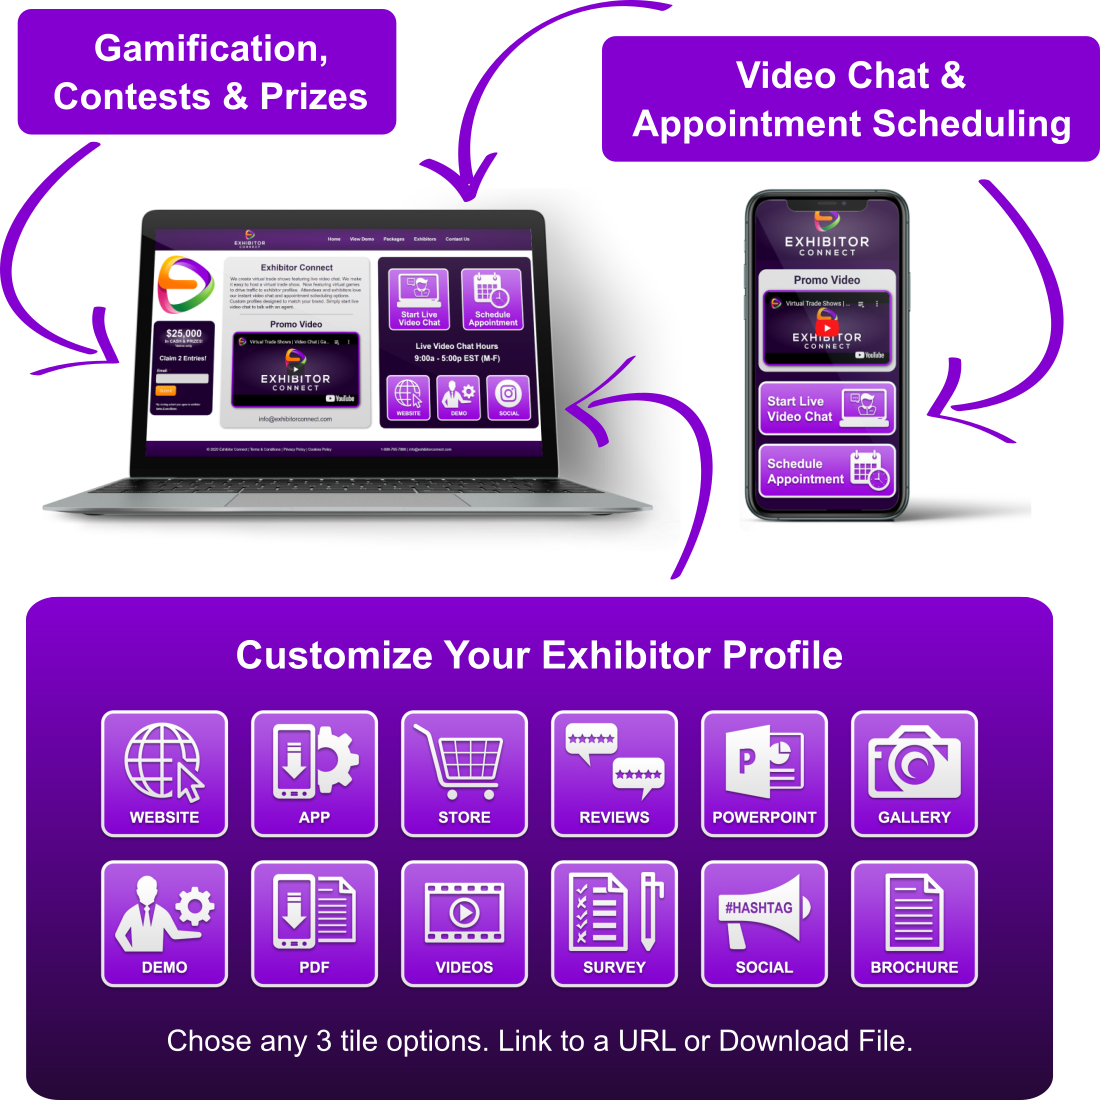 Virtual-Trade-Show-Exhibitor-Profile-Video-Chat-Gamification